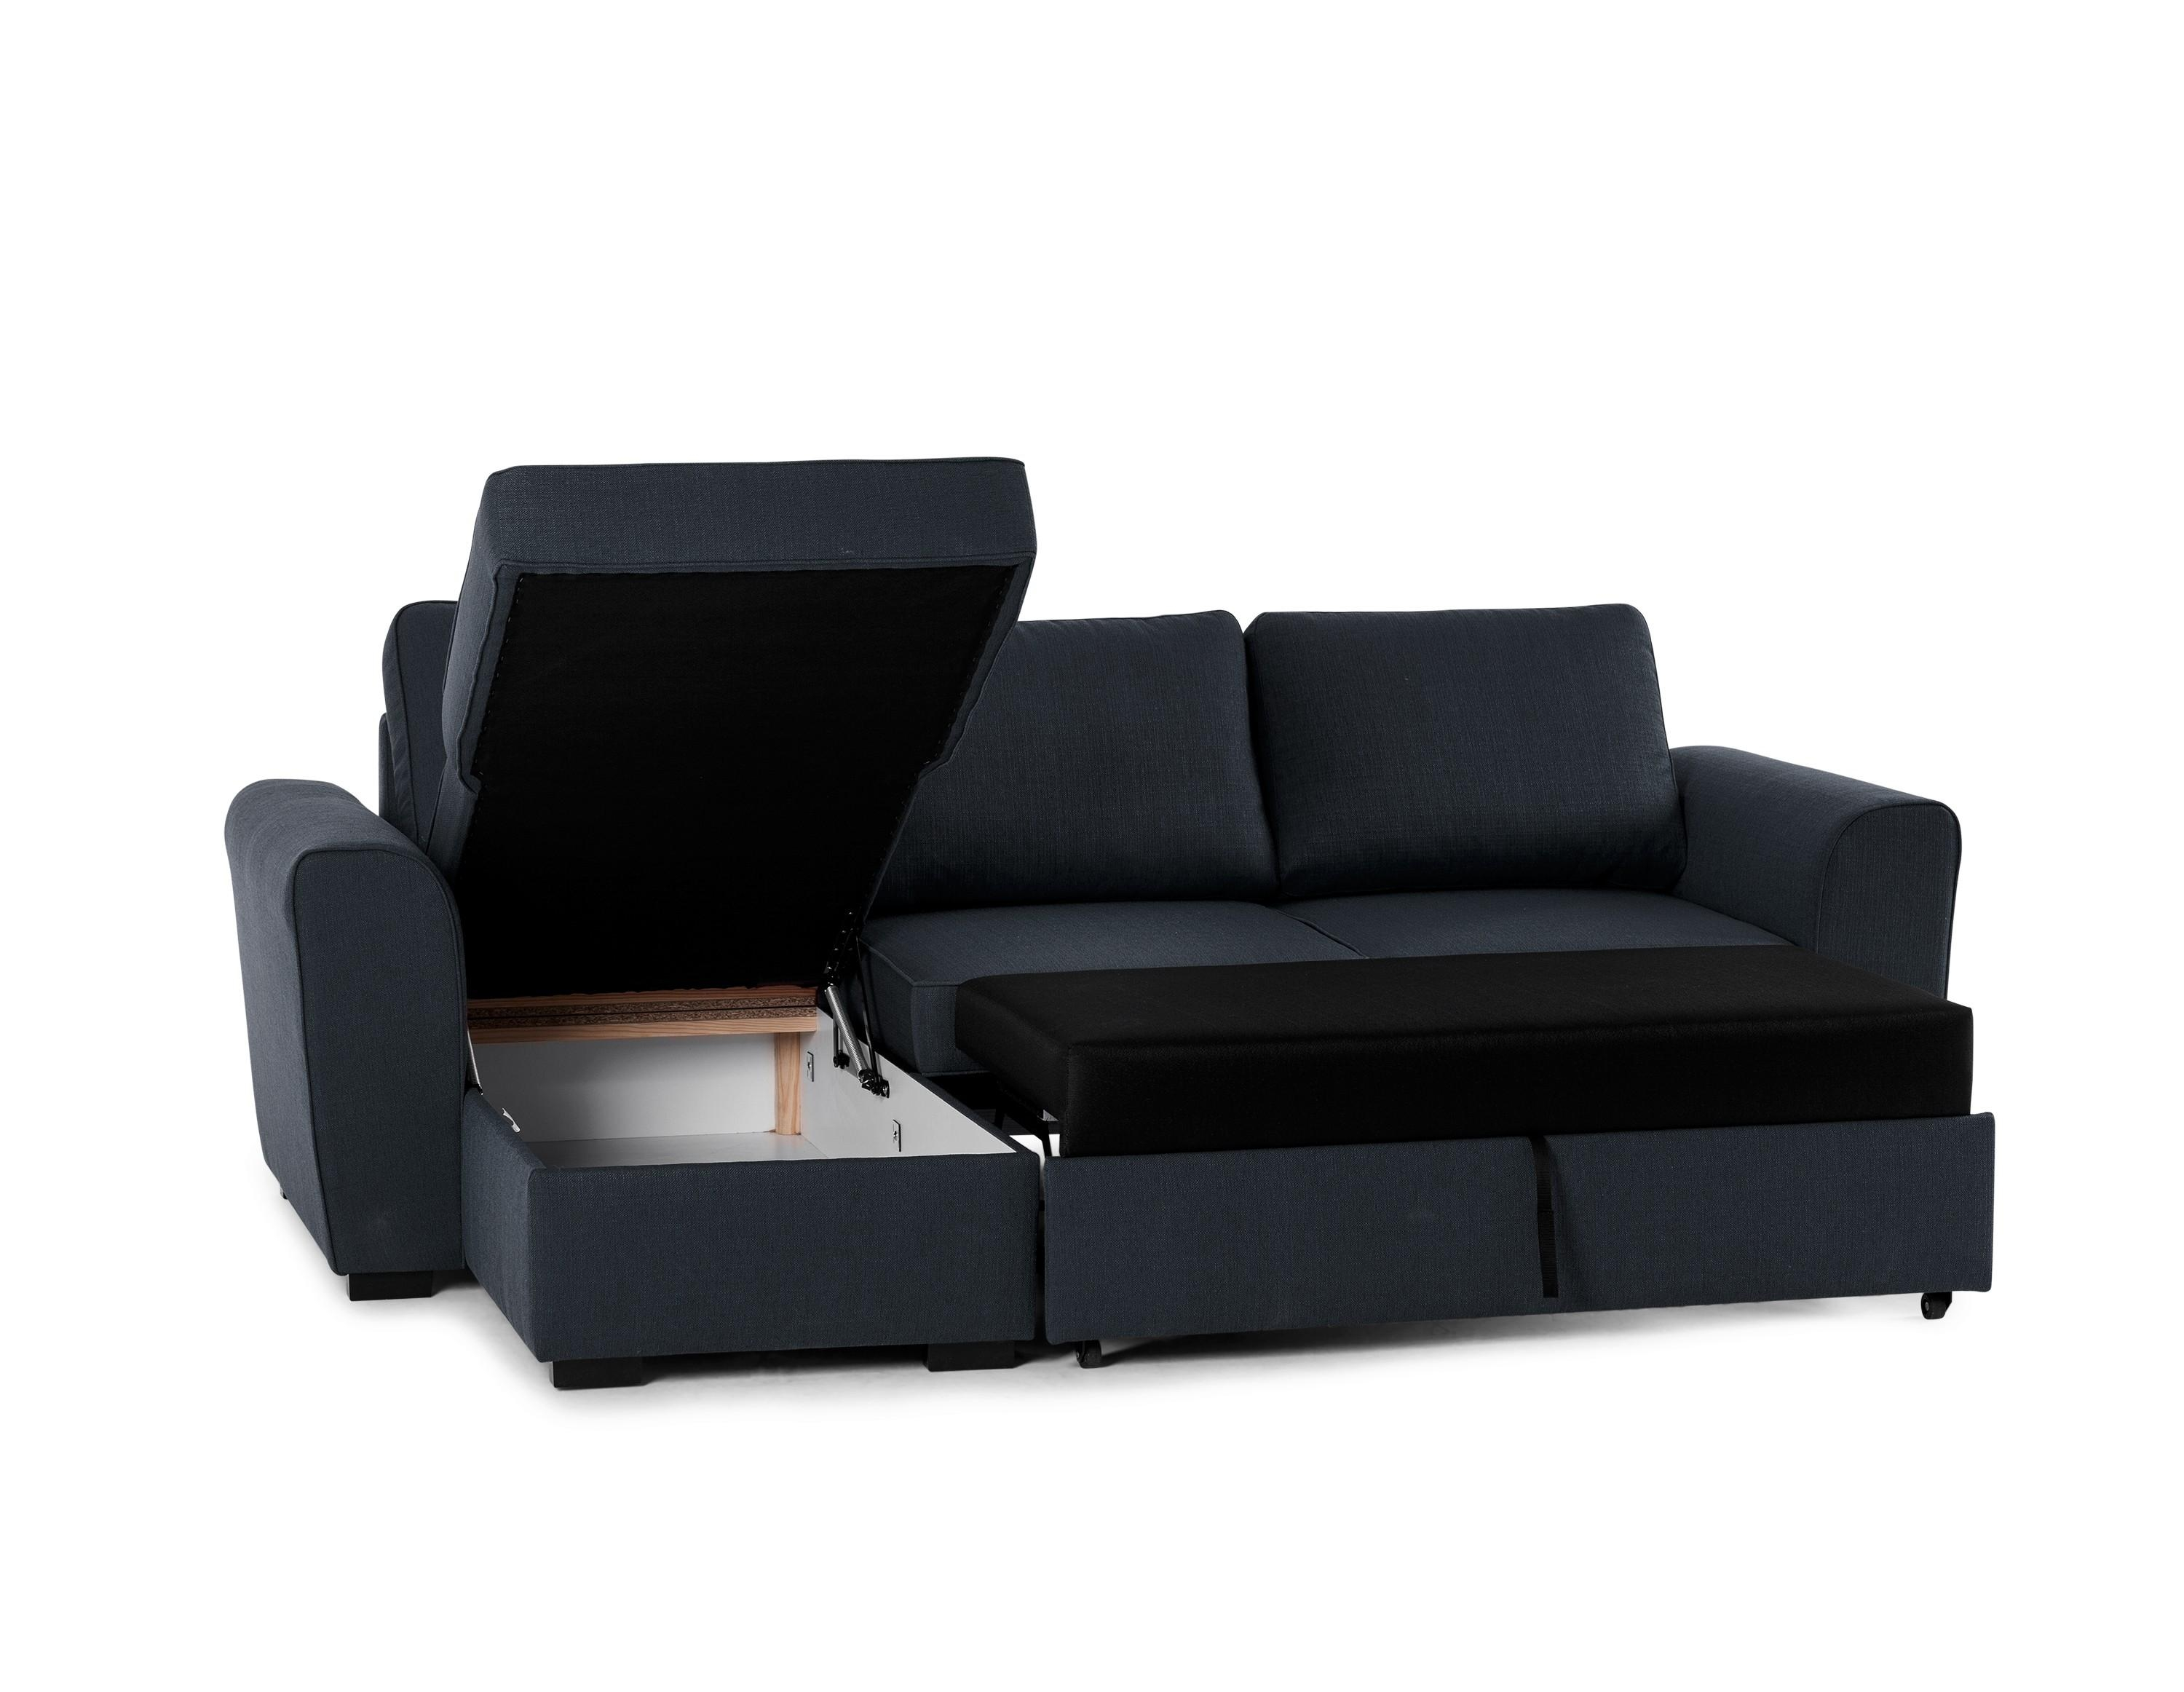 Sofa: Cozy Sears Sofa Bed For Elegant Tufted Sofa Design Ideas With Sofas With Beds (Image 17 of 22)